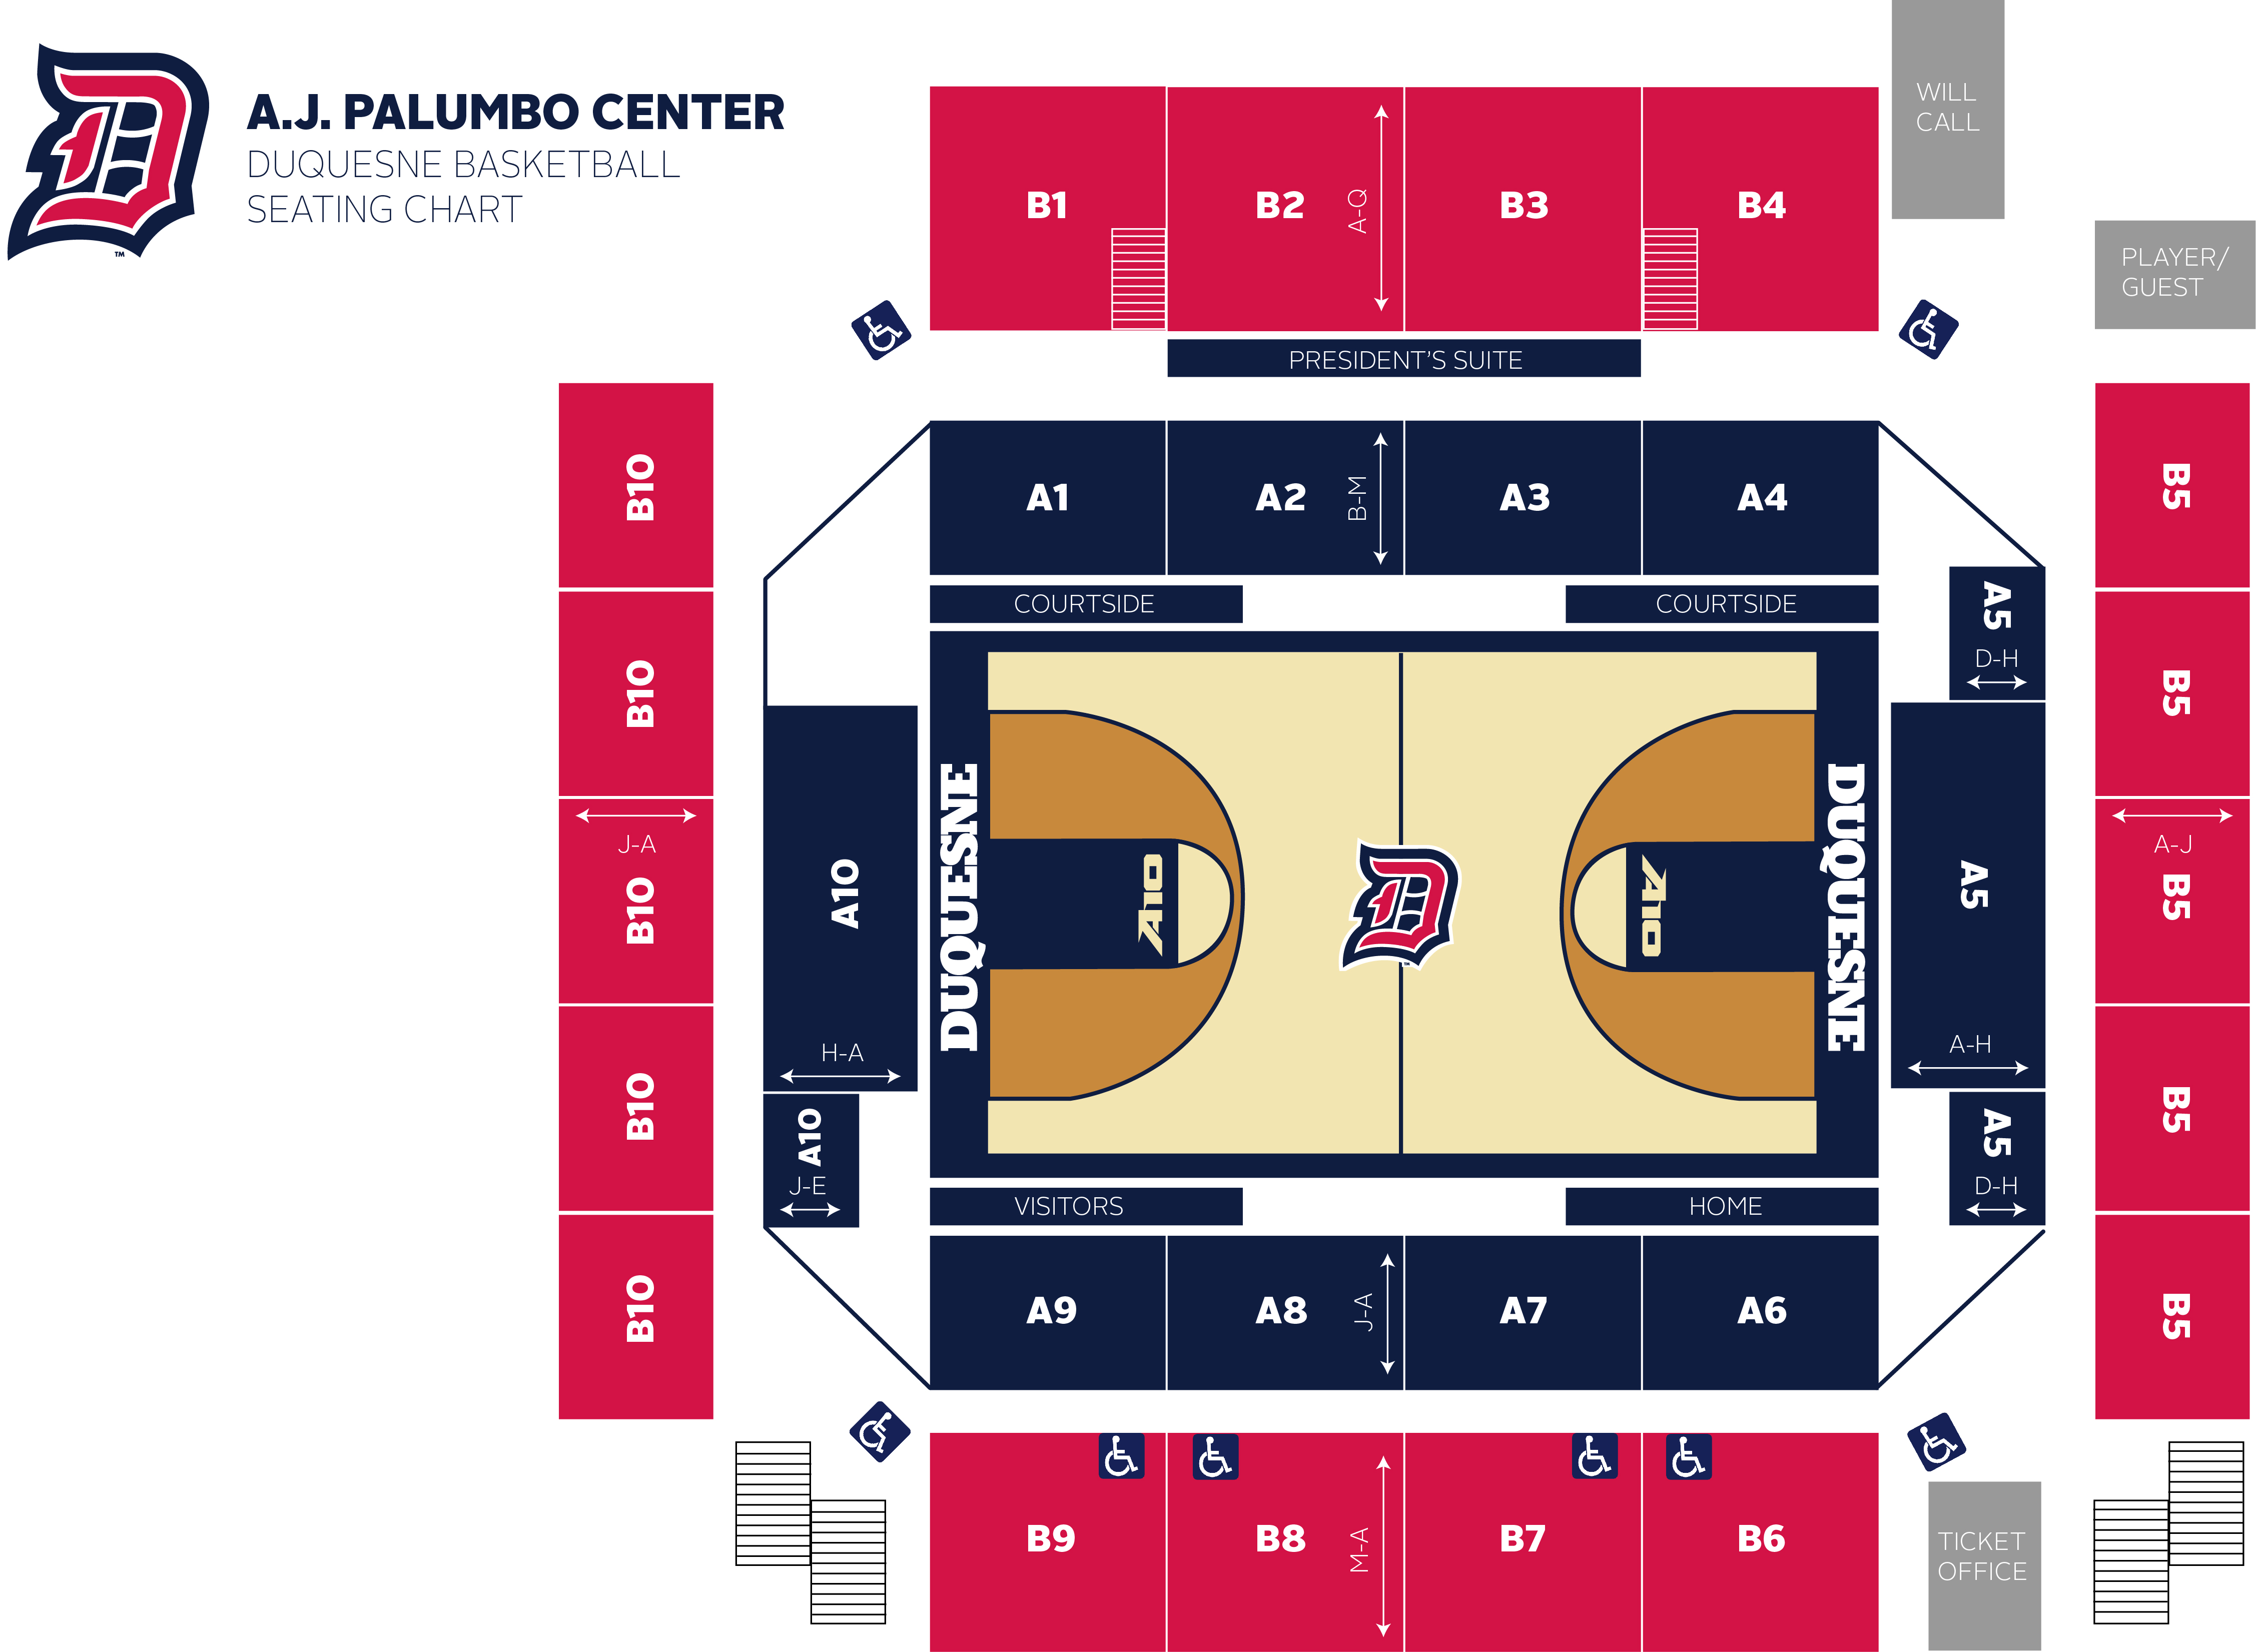 Palumbo Center Seating Chart